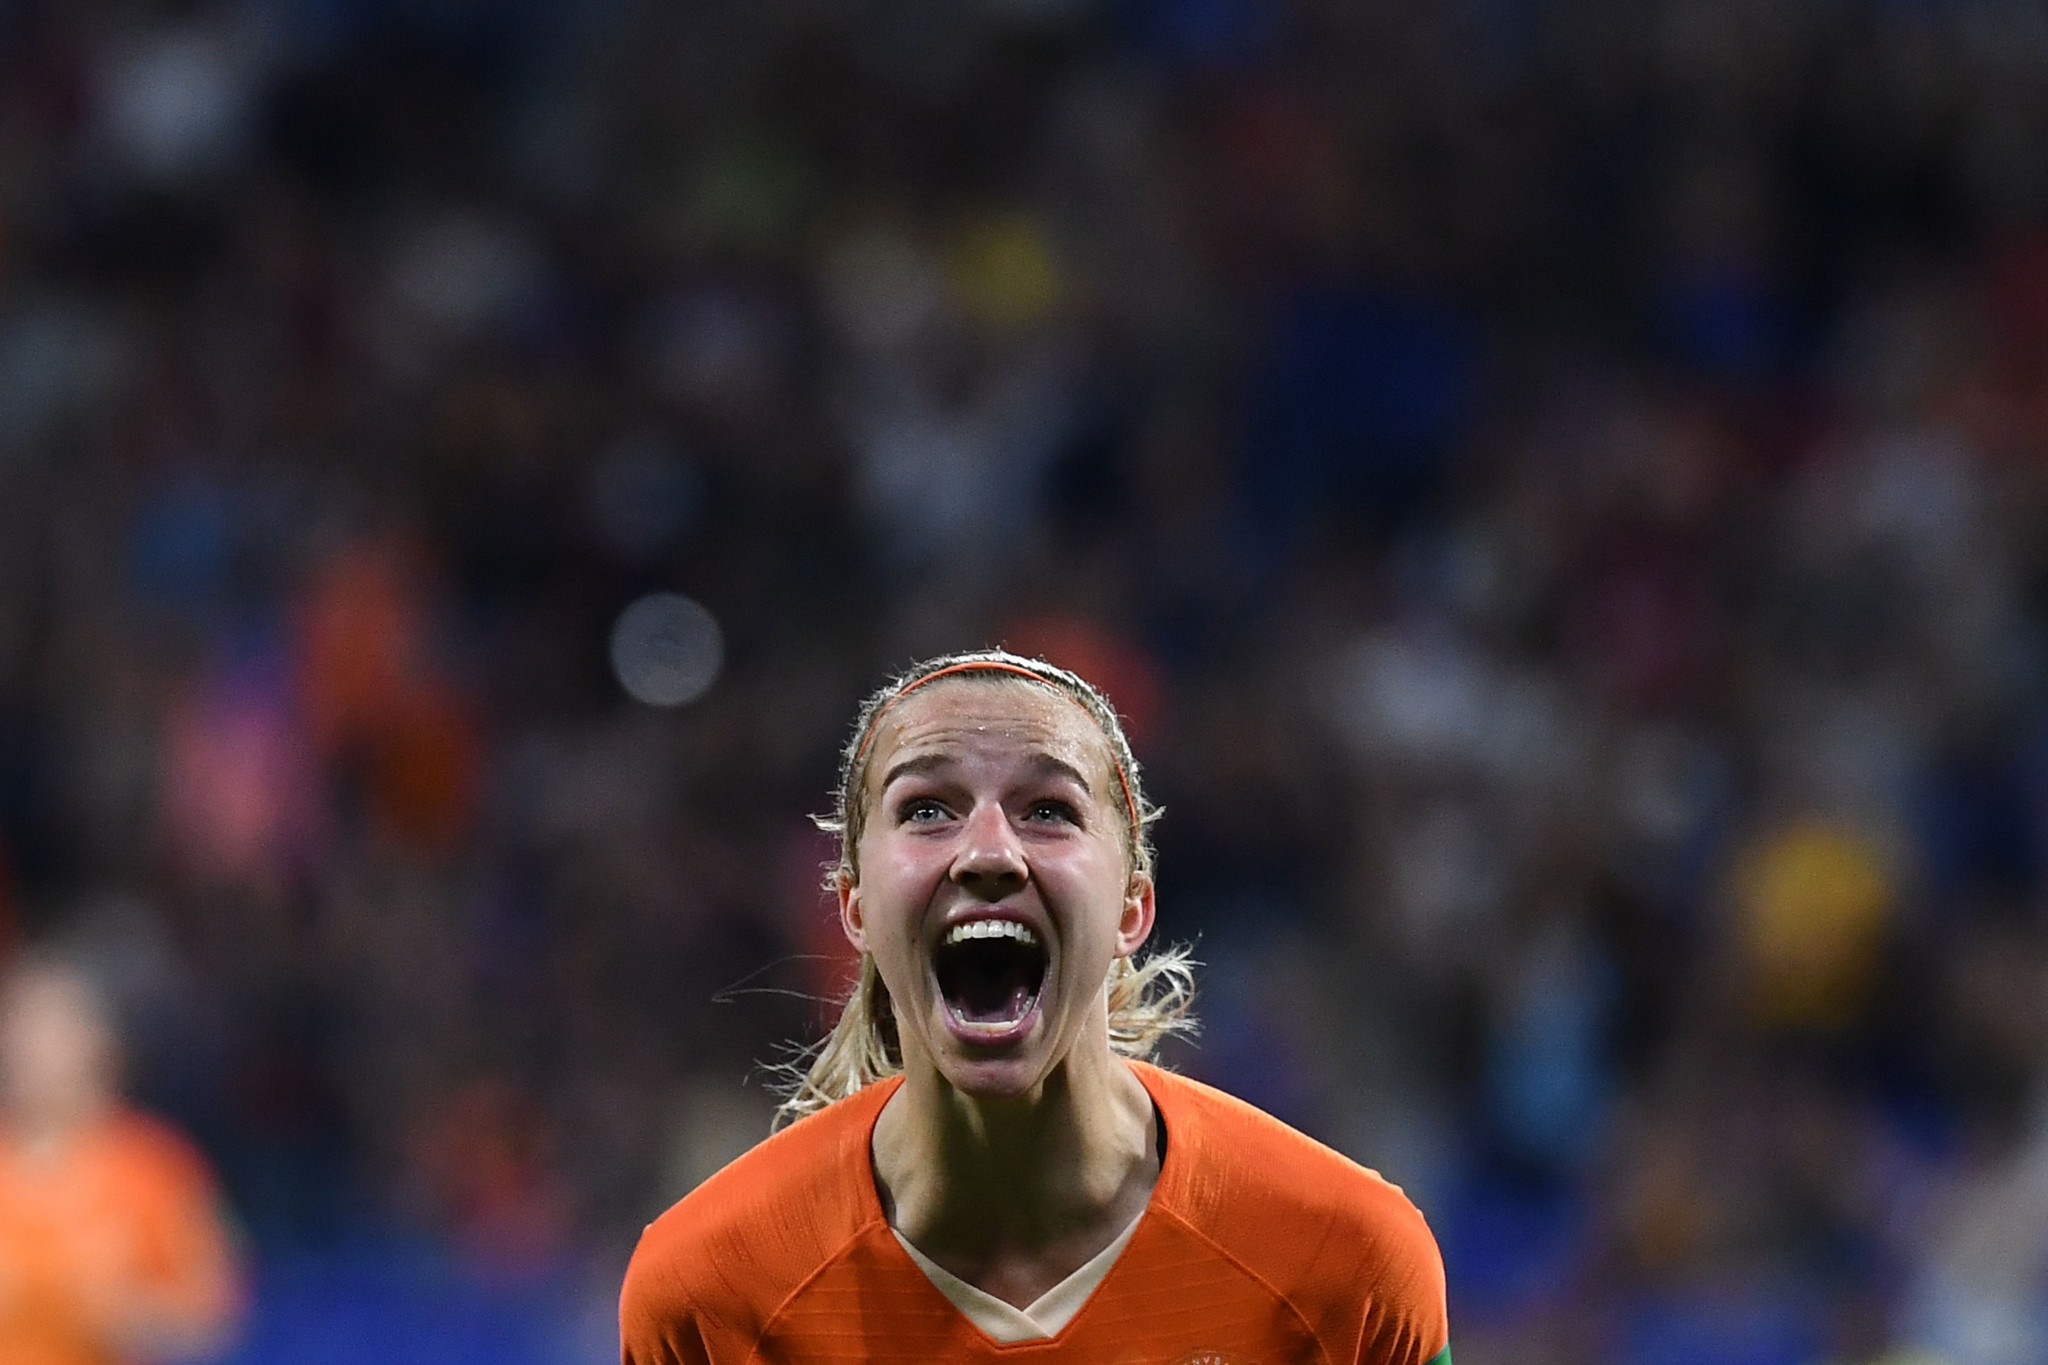 Netherlands edge out Sweden to reach FIFA Women's World Cup final